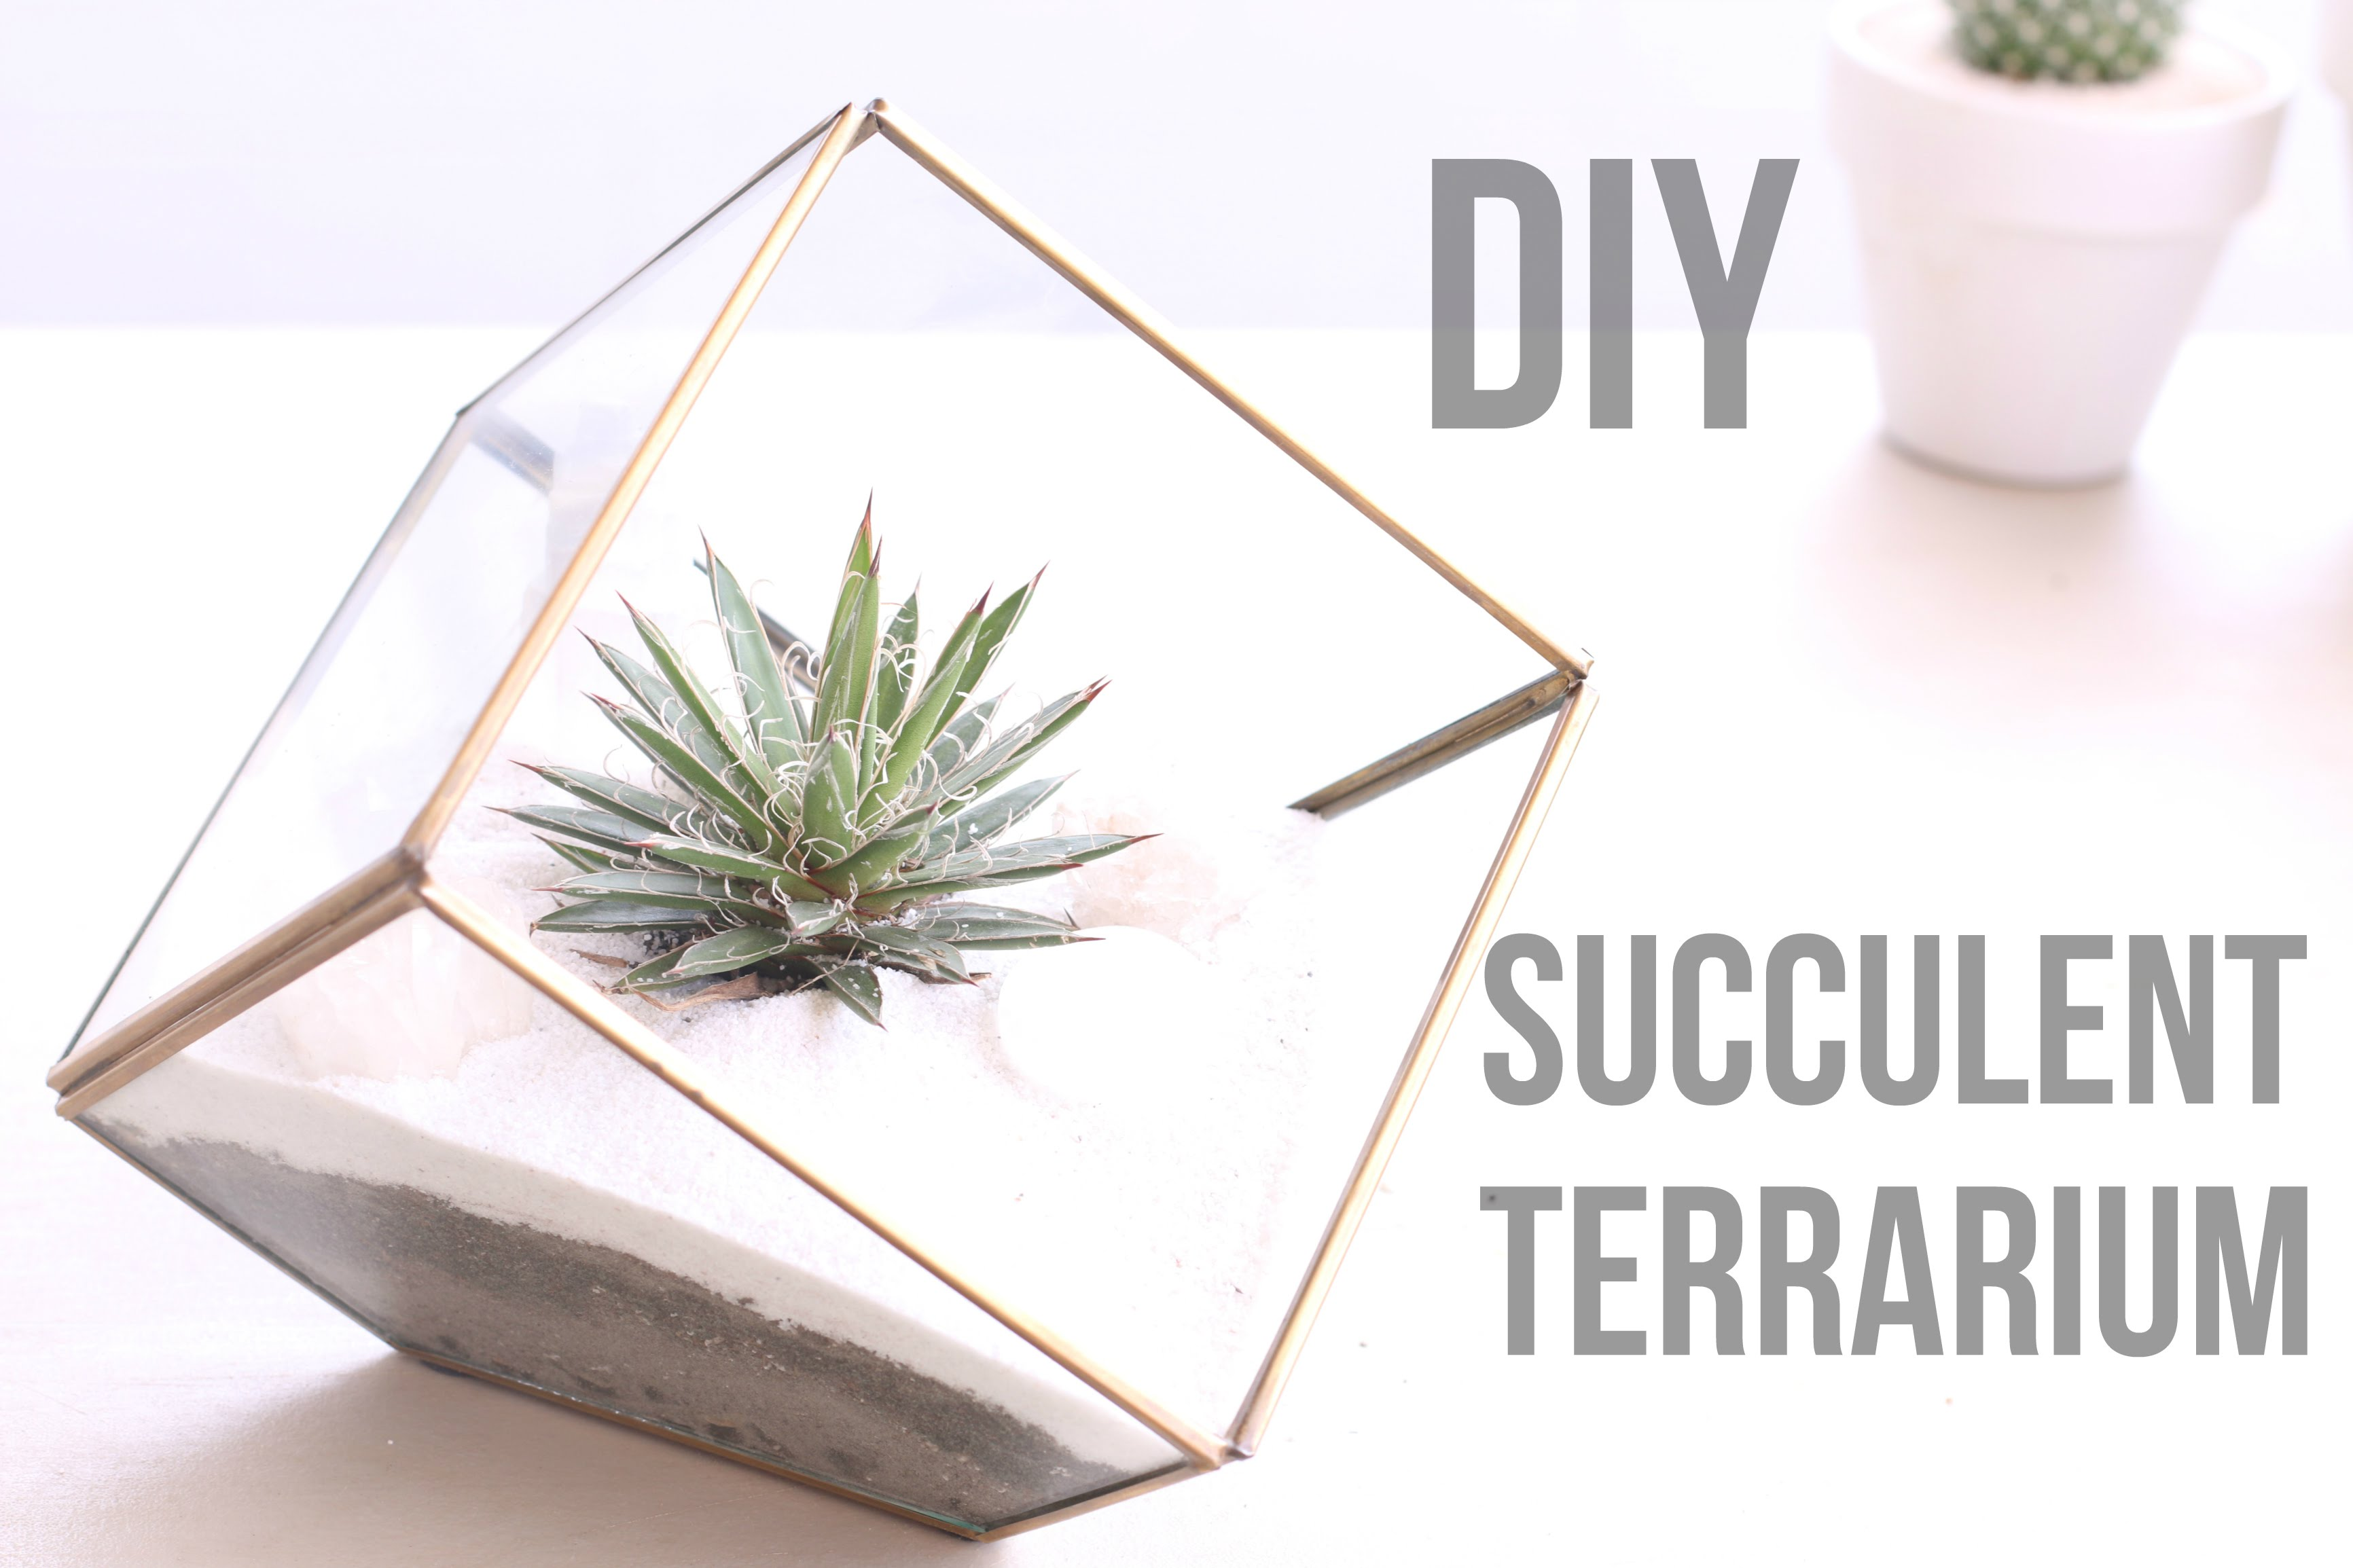 Diy Projects Video Diy Succulent Terrarium Ideas Diyall Net Home Of Diy Craft Ideas Inspiration Diy Projects Craft Ideas How To S For Home Decor With Videos